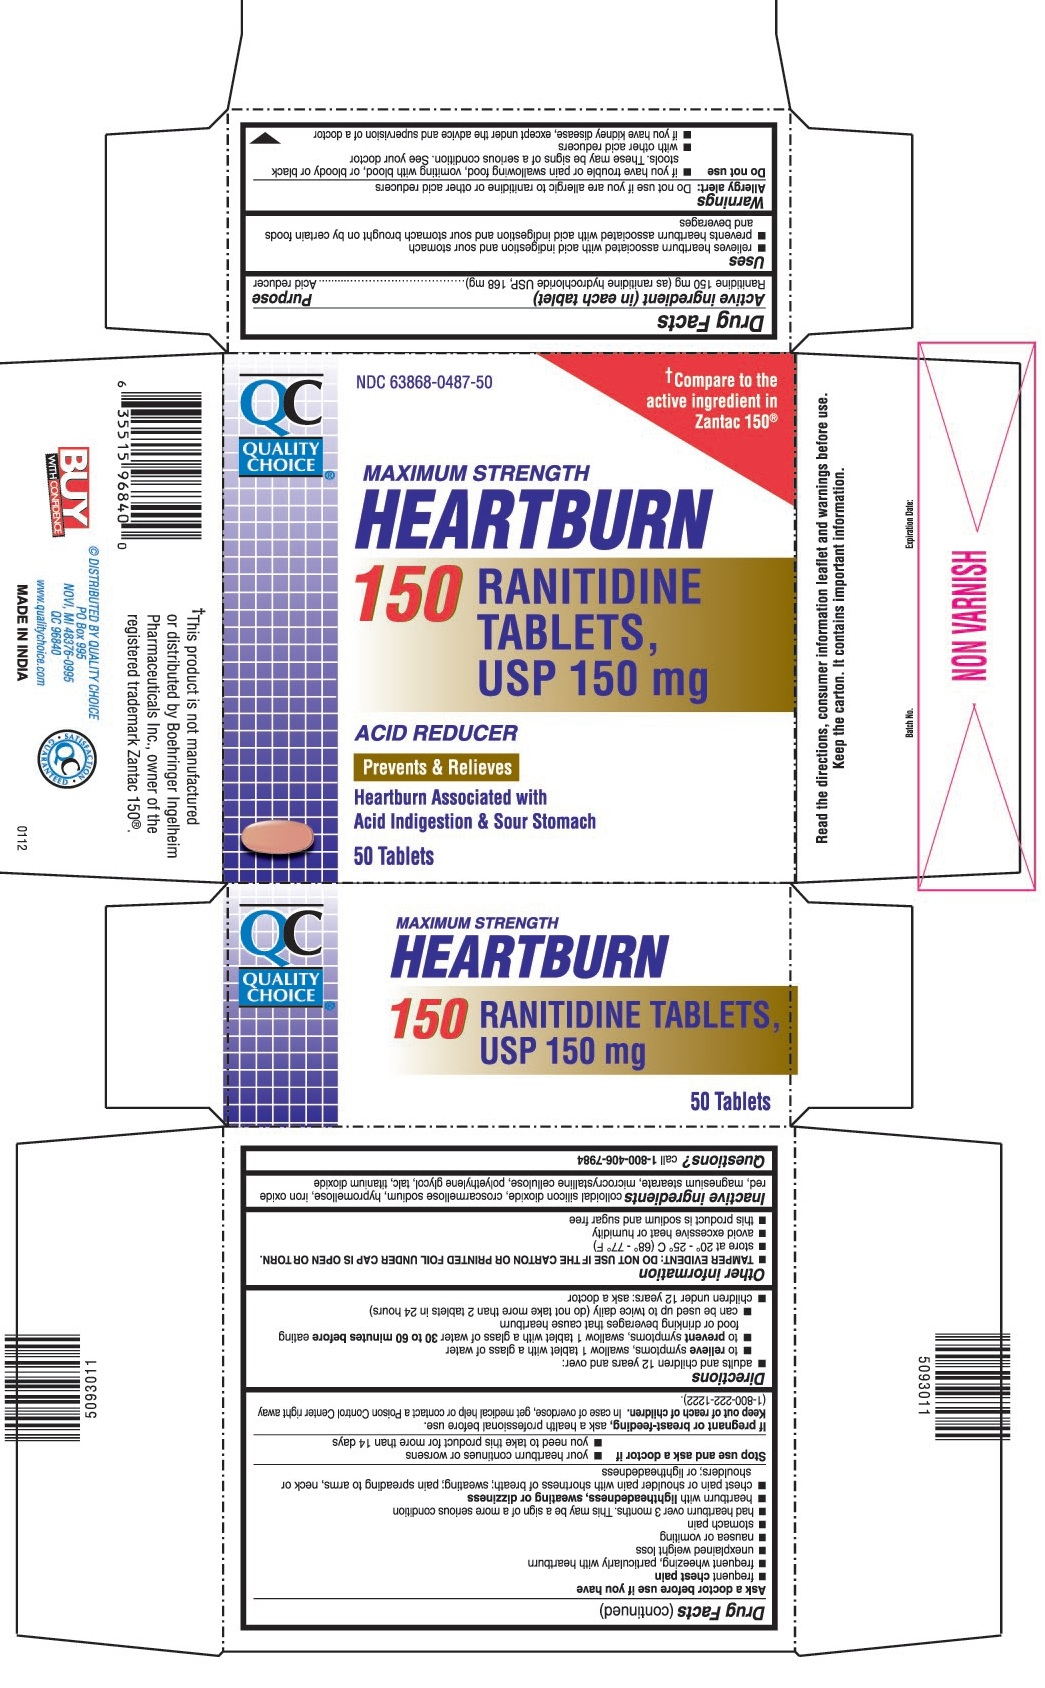 This is the 50 count bottle carton label for Quality Choice Ranitidine tablets, USP 150 mg.